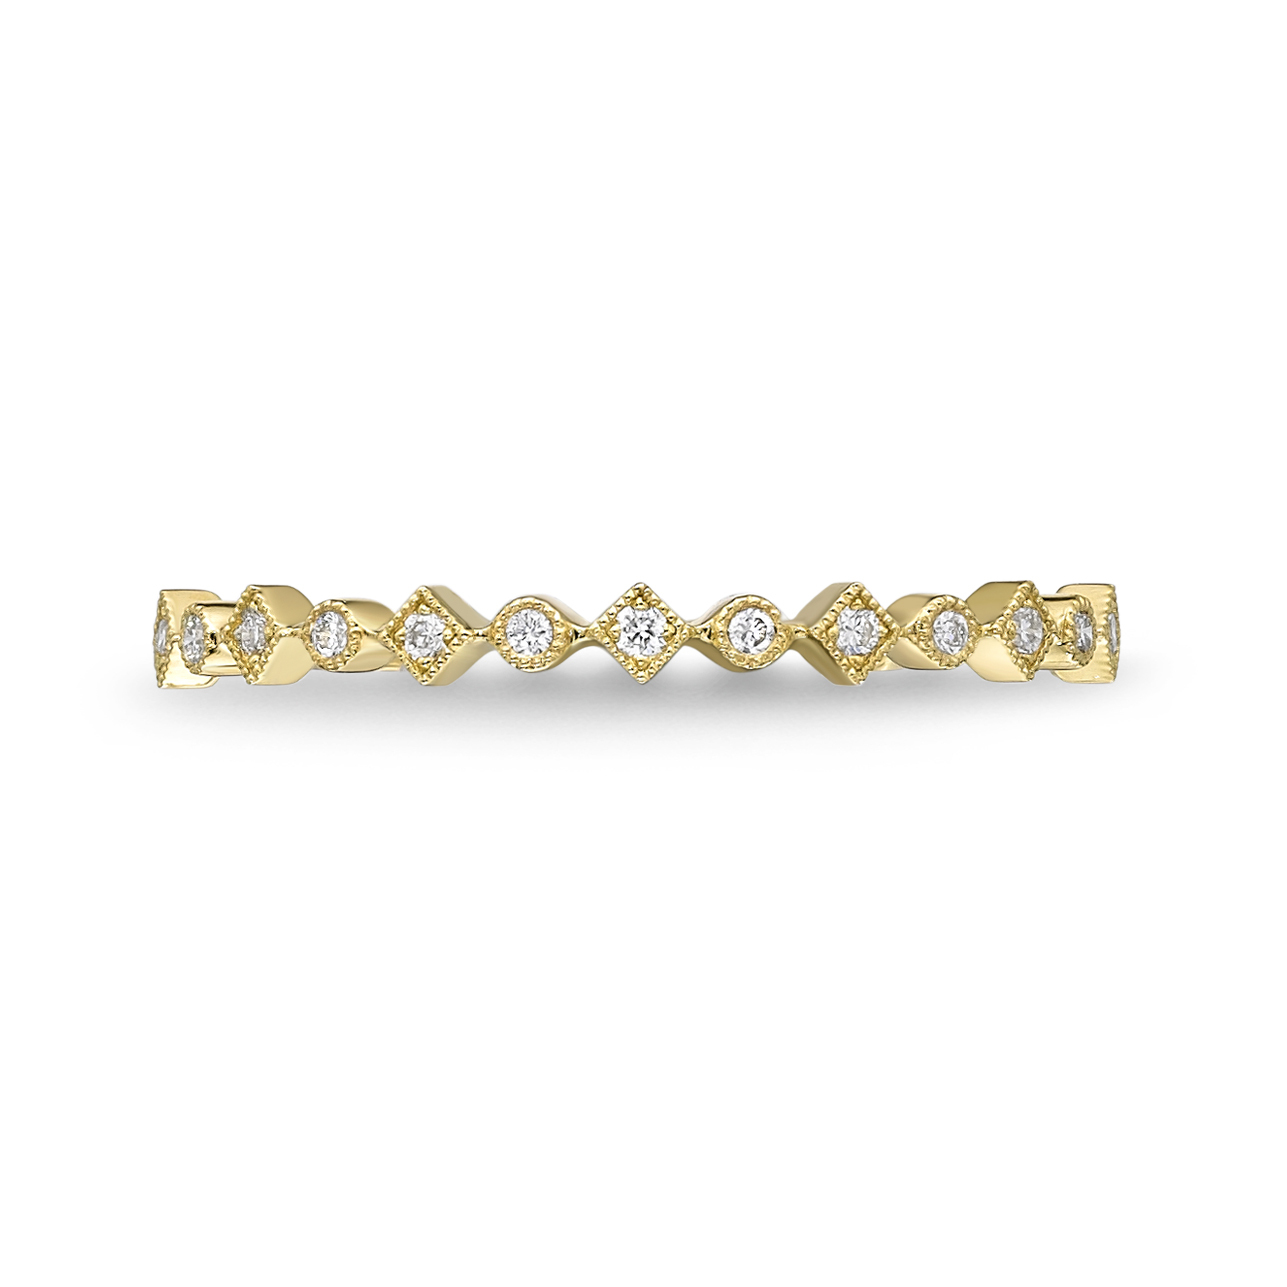 Memoire 18ct Yellow Gold Vintage Square On Point & Round Stack Ring with 15 Diamonds